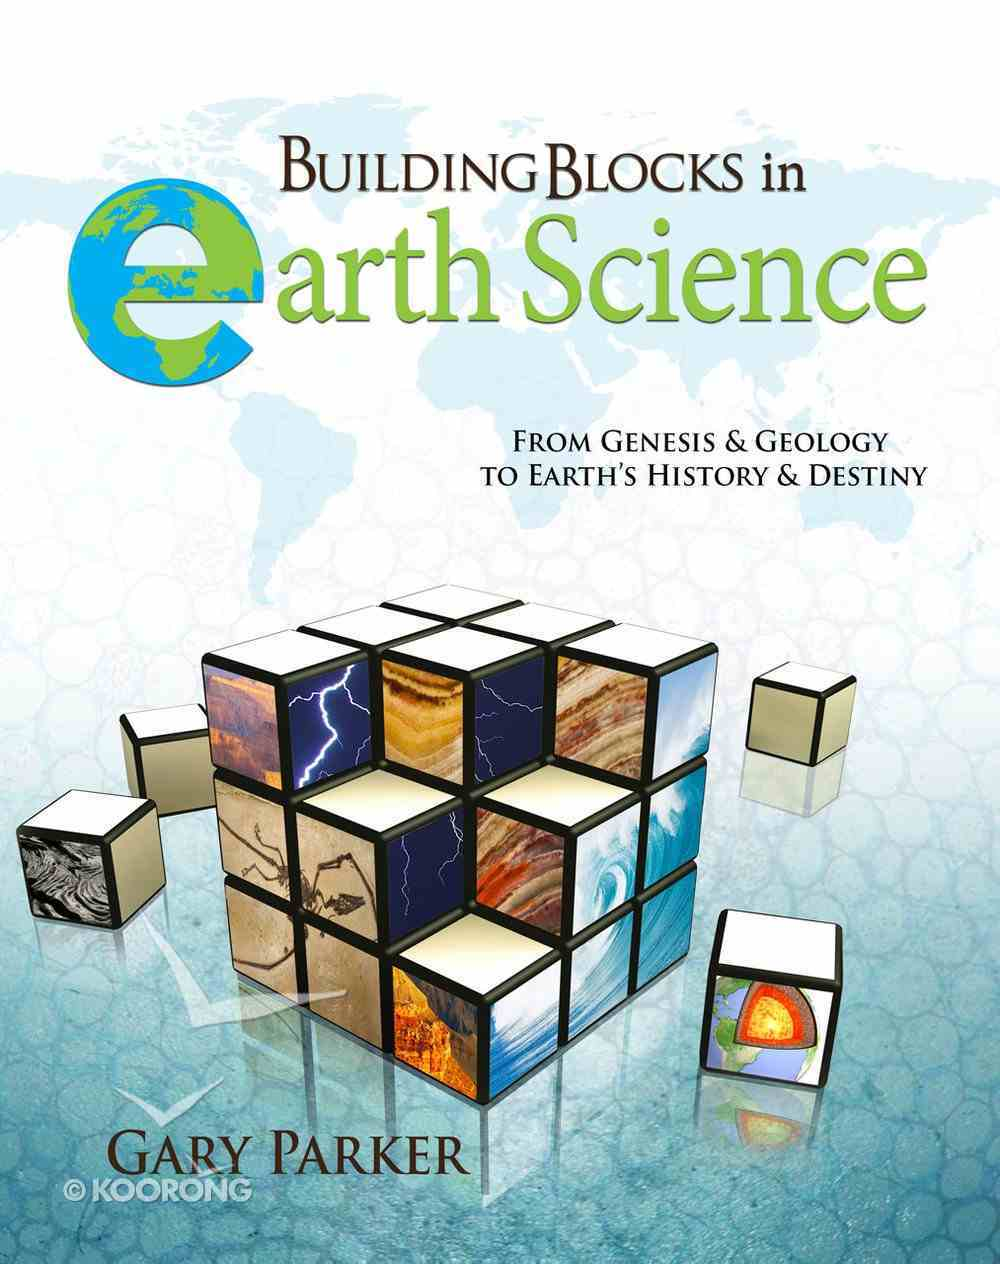 Building Blocks in Earth Science: From Genesis & Geology to Earth's History & Destiny eBook